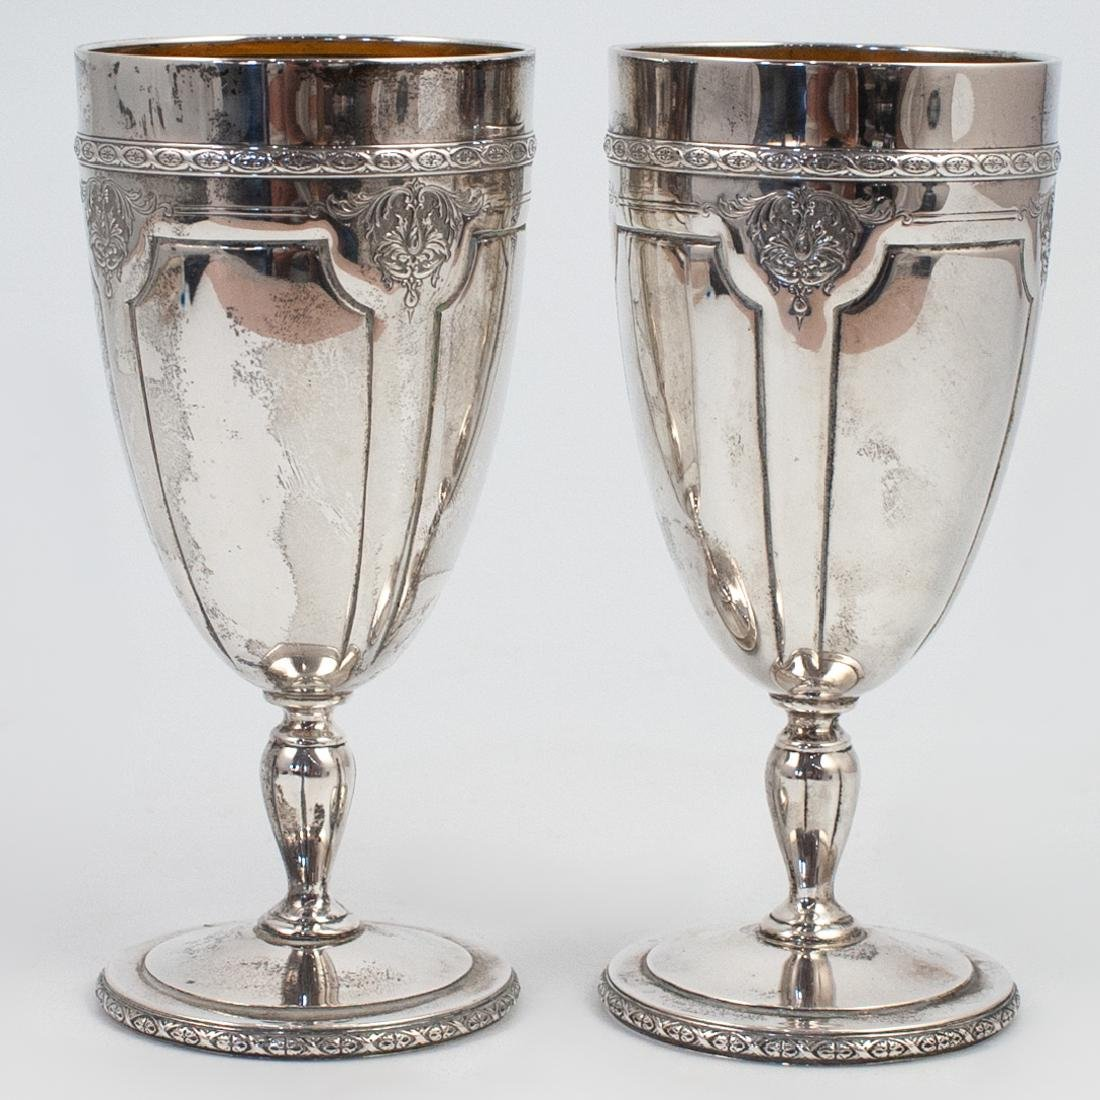 Pair of Louis XIV Sterling Silver Goblets